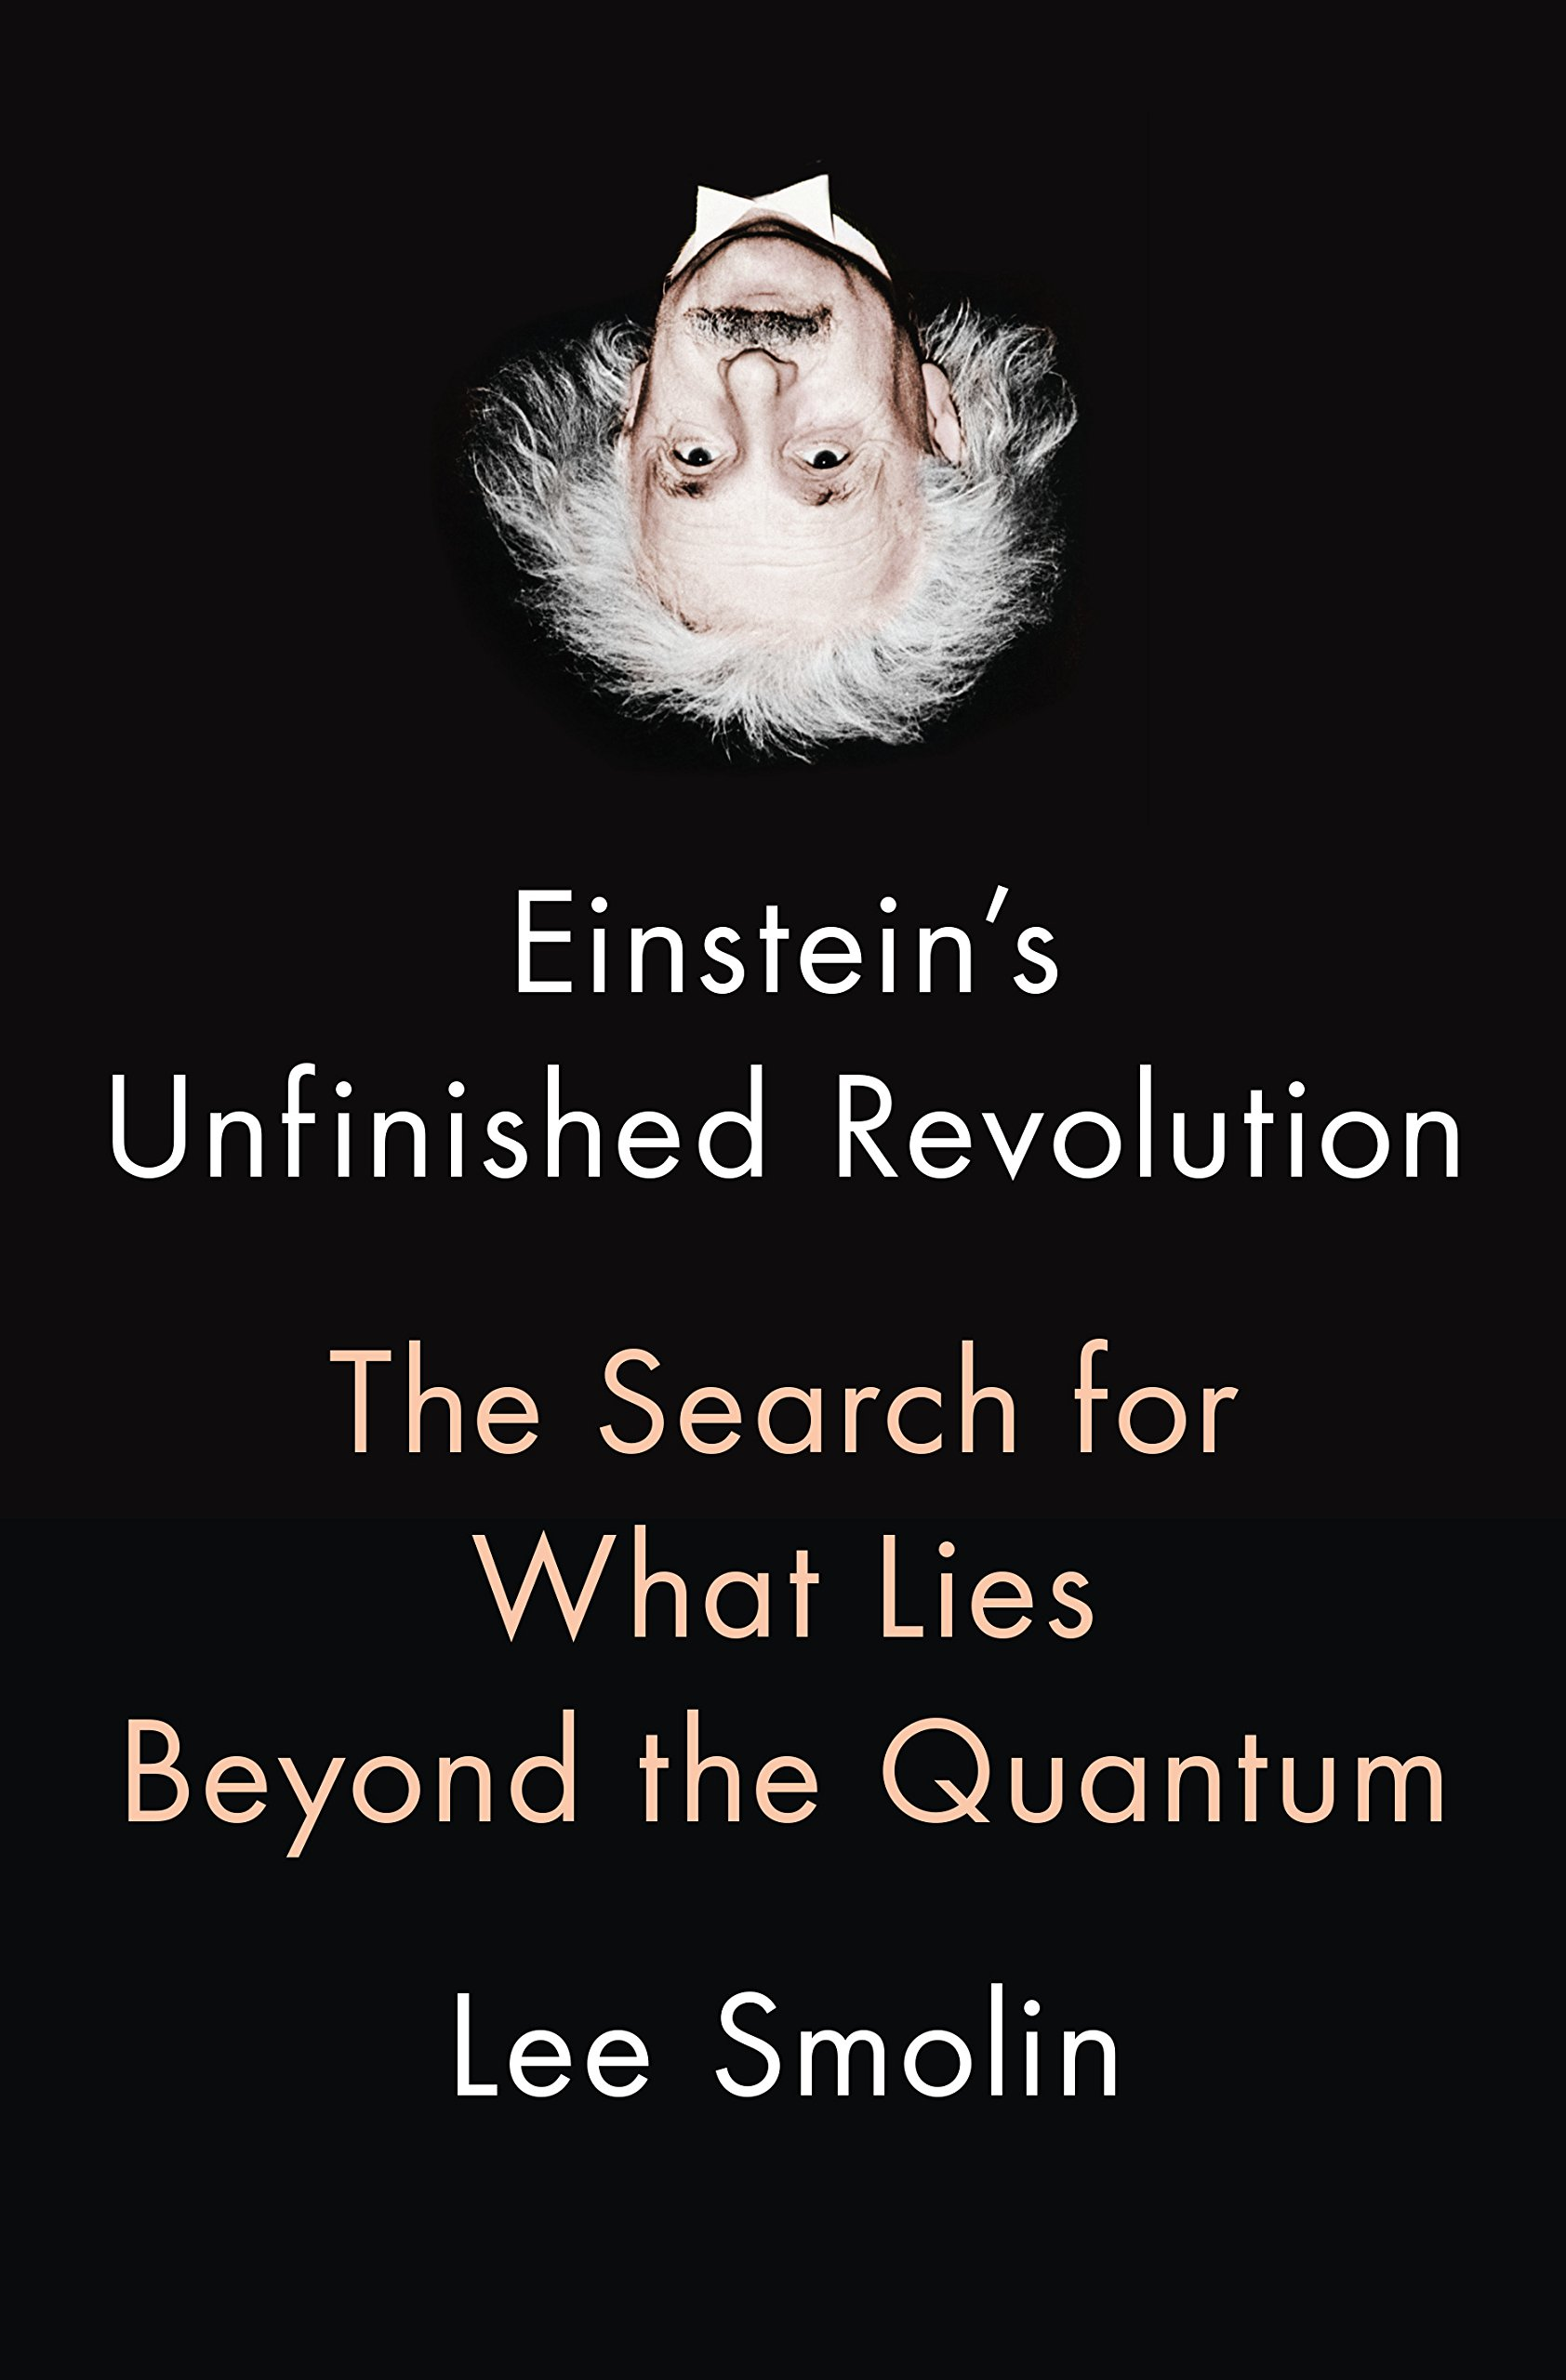 Einstein's Unfinished Revolution: The Search for What Lies Beyond the Quantum por Lee Smolin